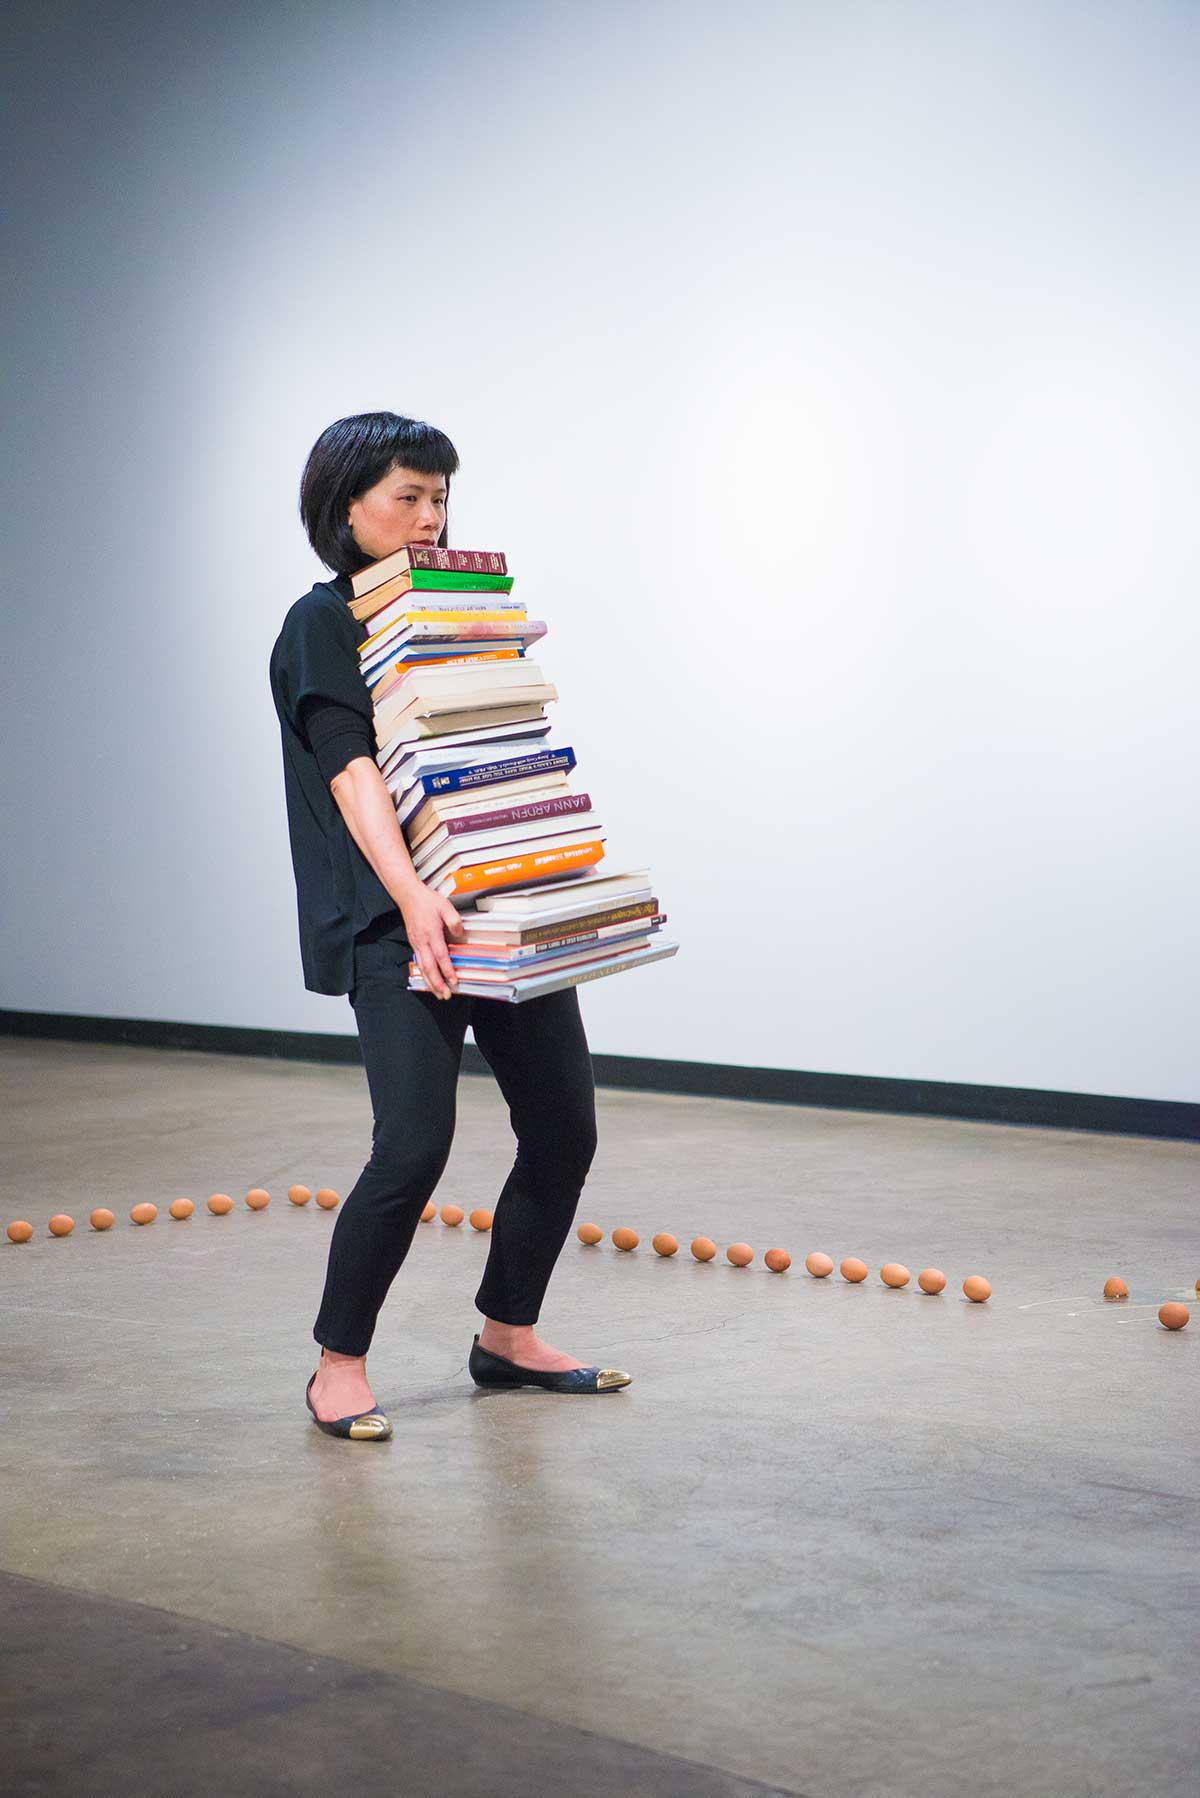 Chun Hua Catherine Dong holds a stack of books and keeps holding position as long as she can